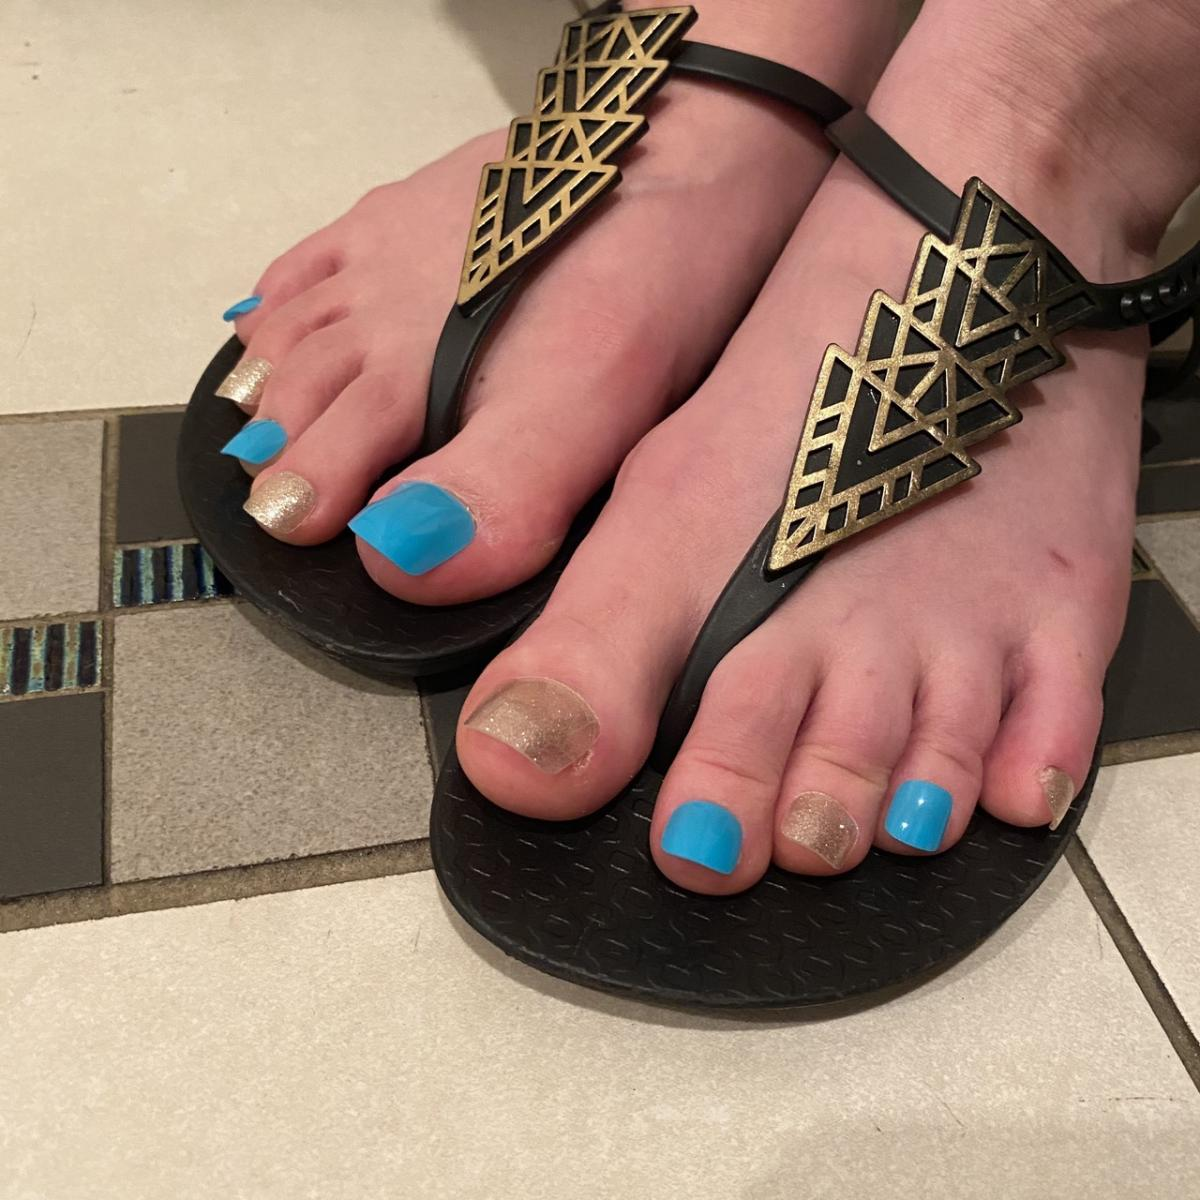 TOES-トウズ-のイメージ